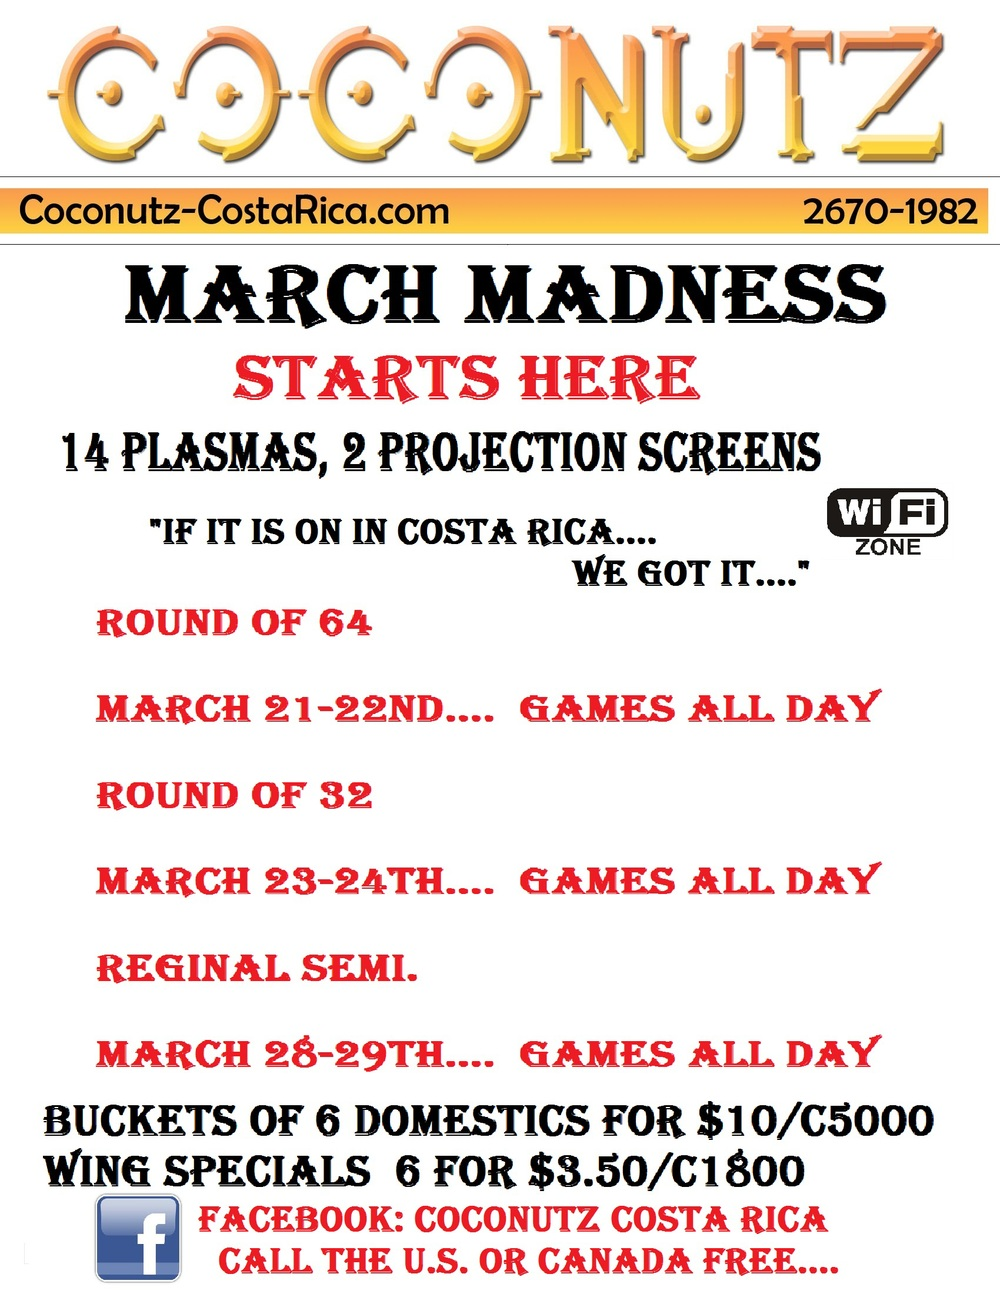 March Madness Games at Coconutz Costa Rica